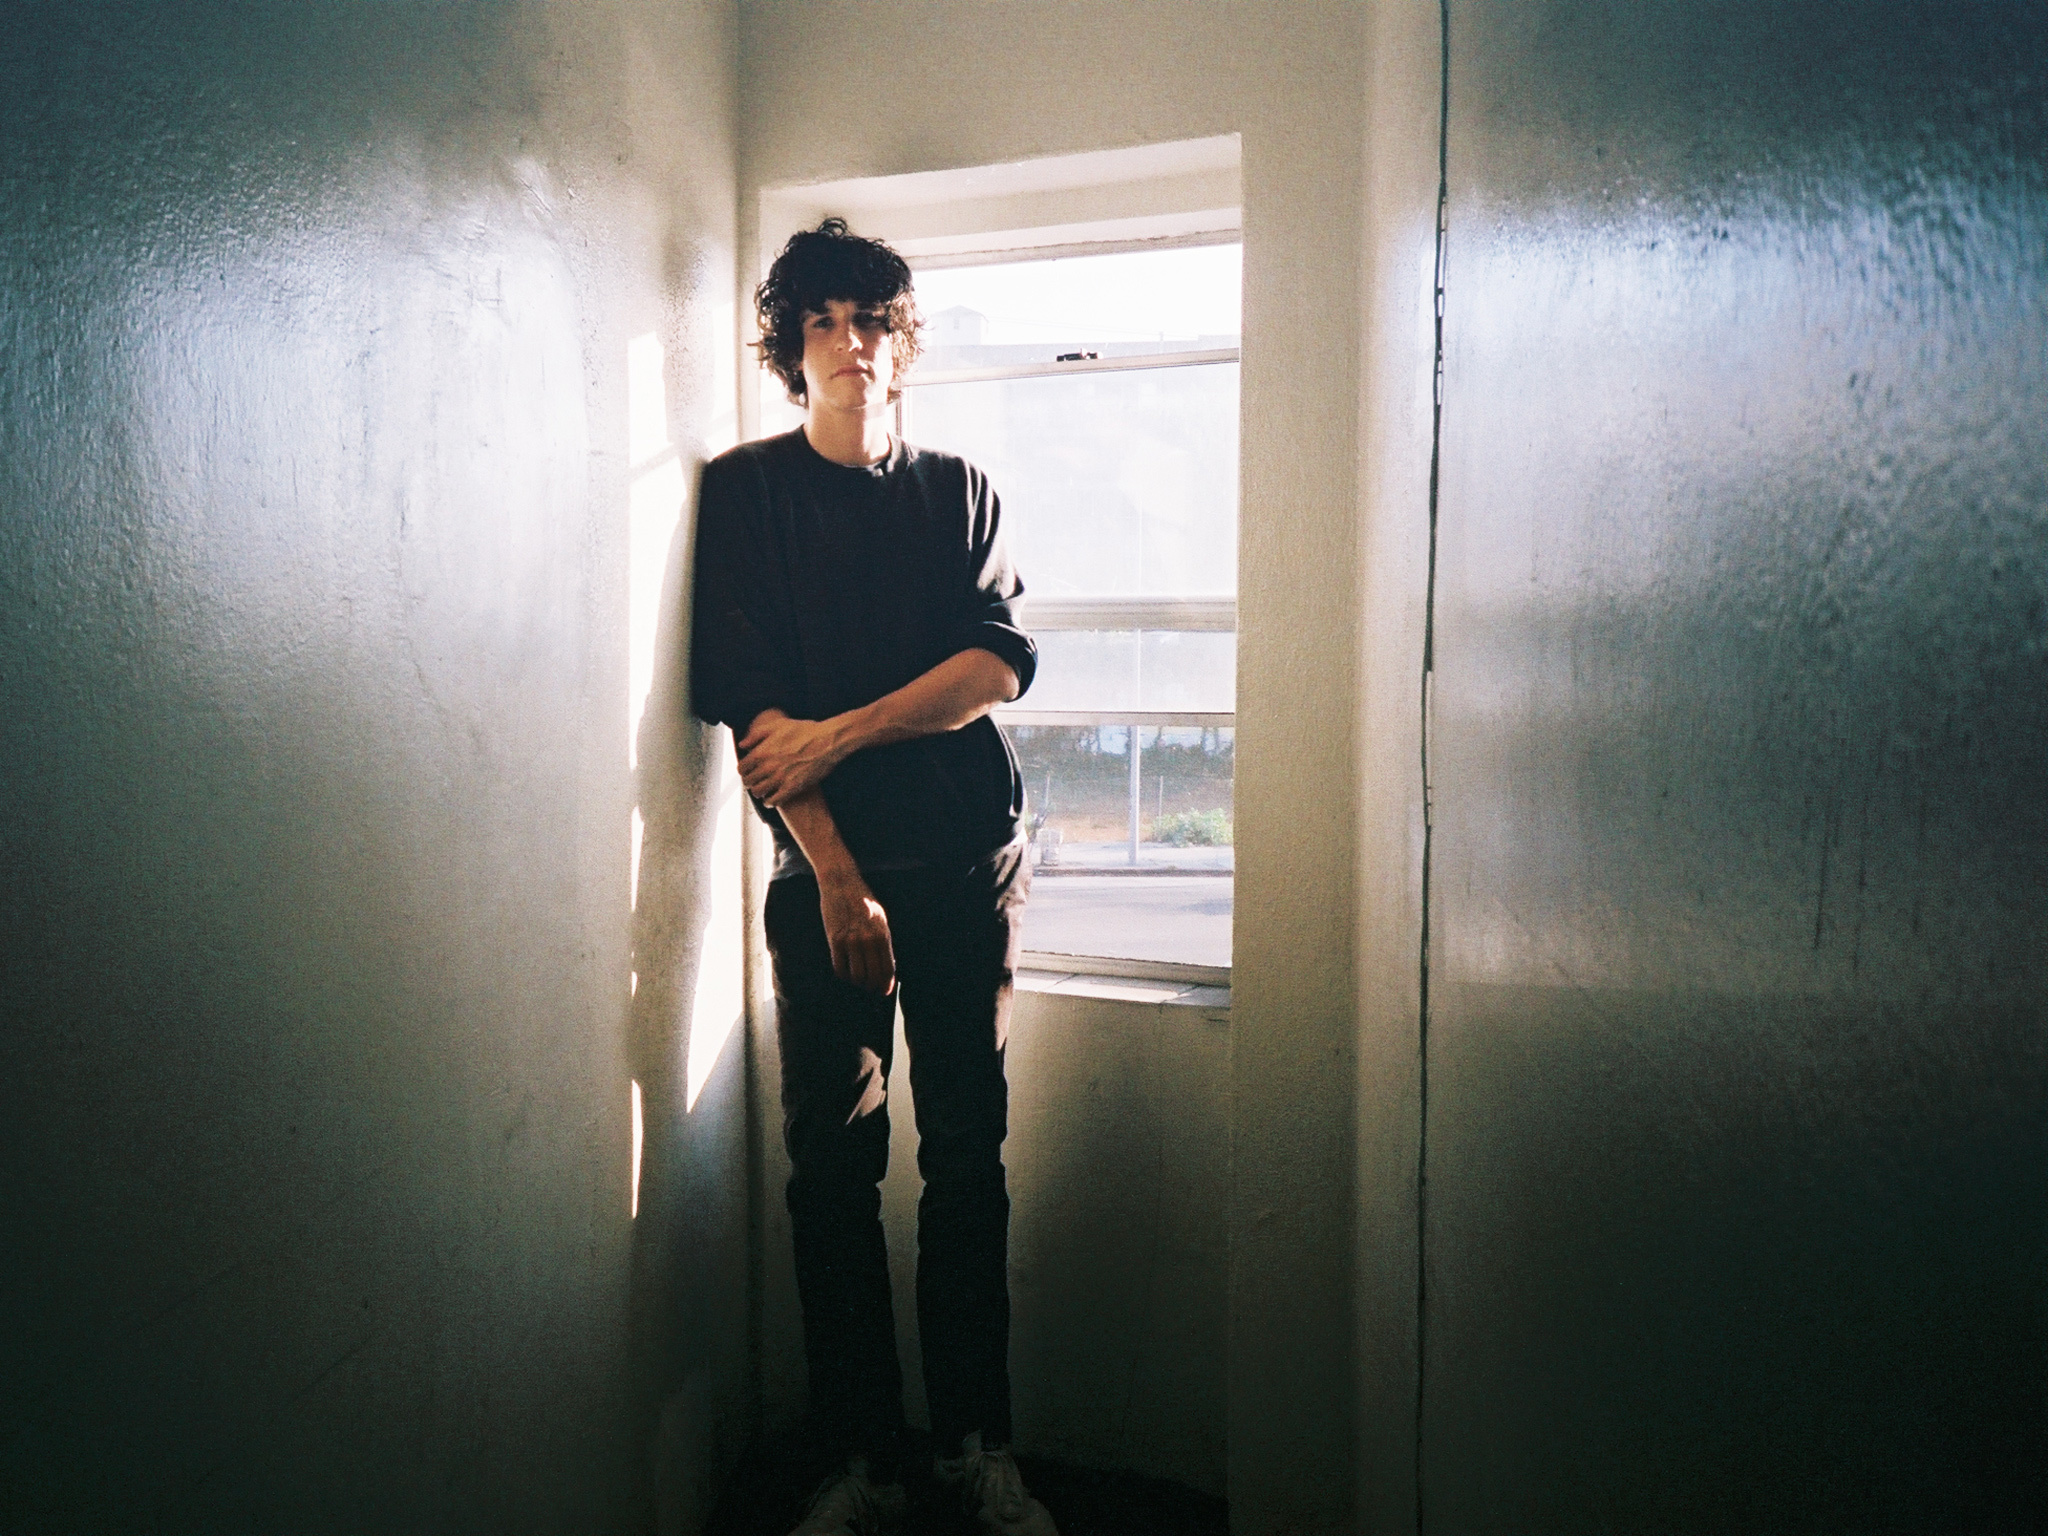 'How Could You Babe' – Tobias Jesso Jr